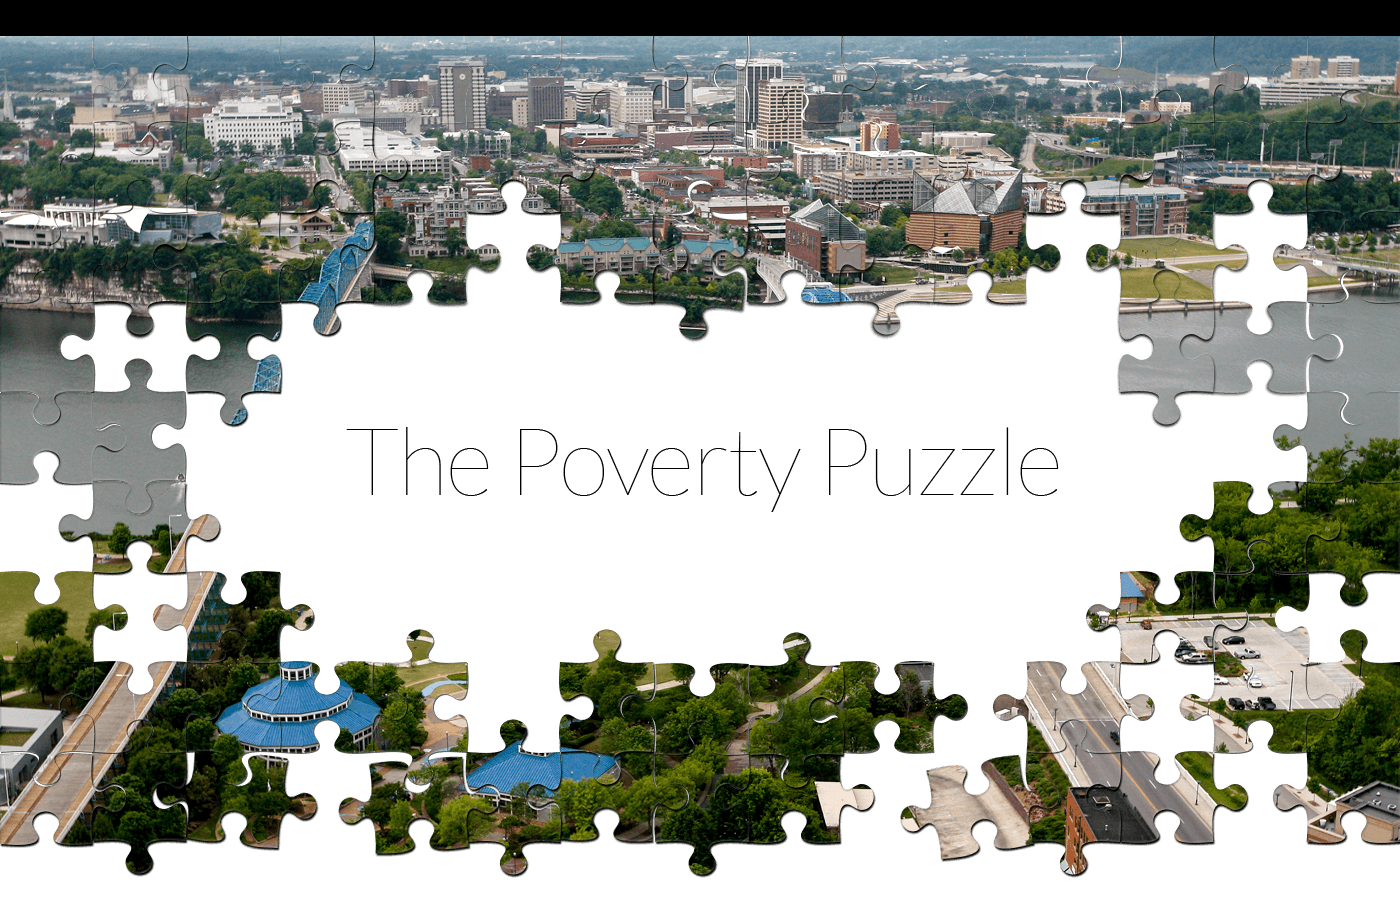 Povertypuzzleheadermaing across the southeast families are caught in an economic trap they cant escape and chattanooga now finds itself at a turning point fandeluxe Choice Image